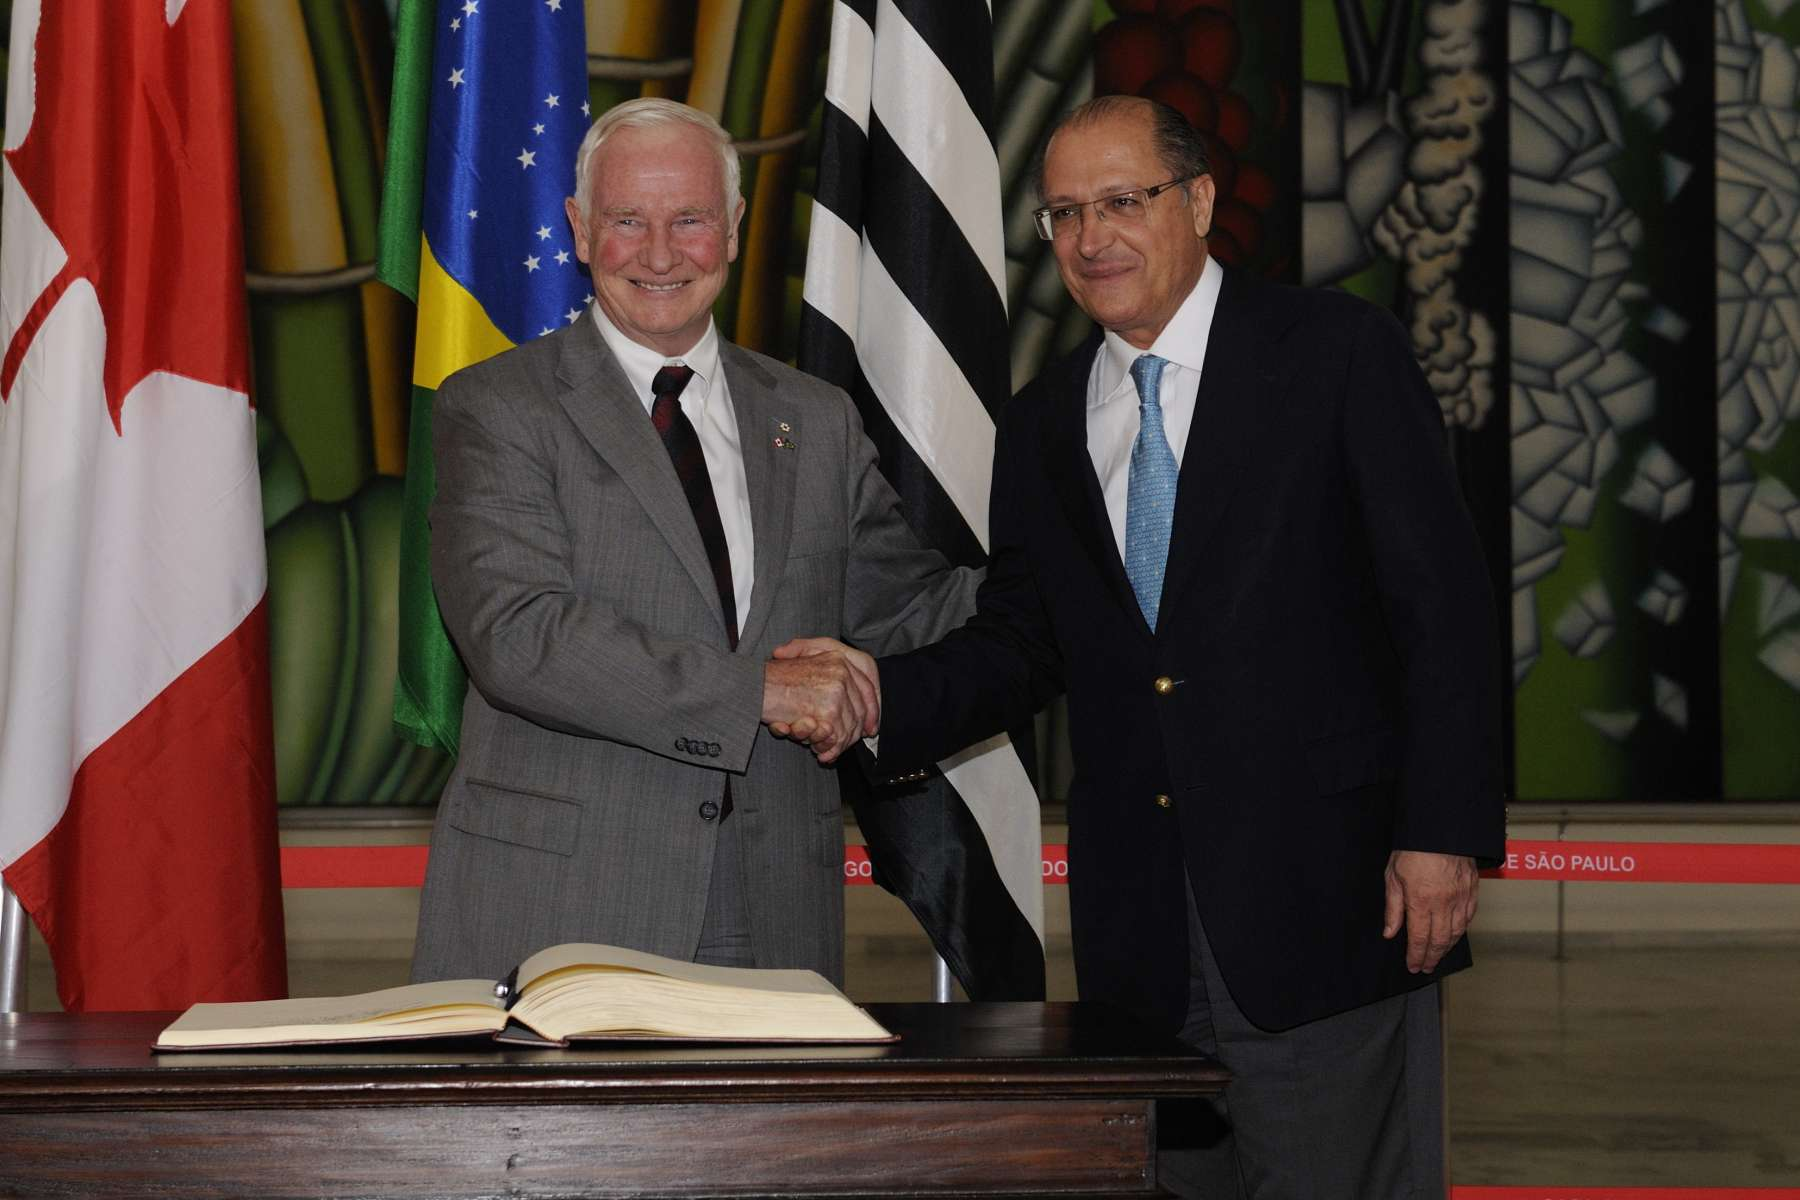 The Governor General met with Mr. Geraldo José Rodrigues Alckmin Filho, Governor of the State of São Paulo.